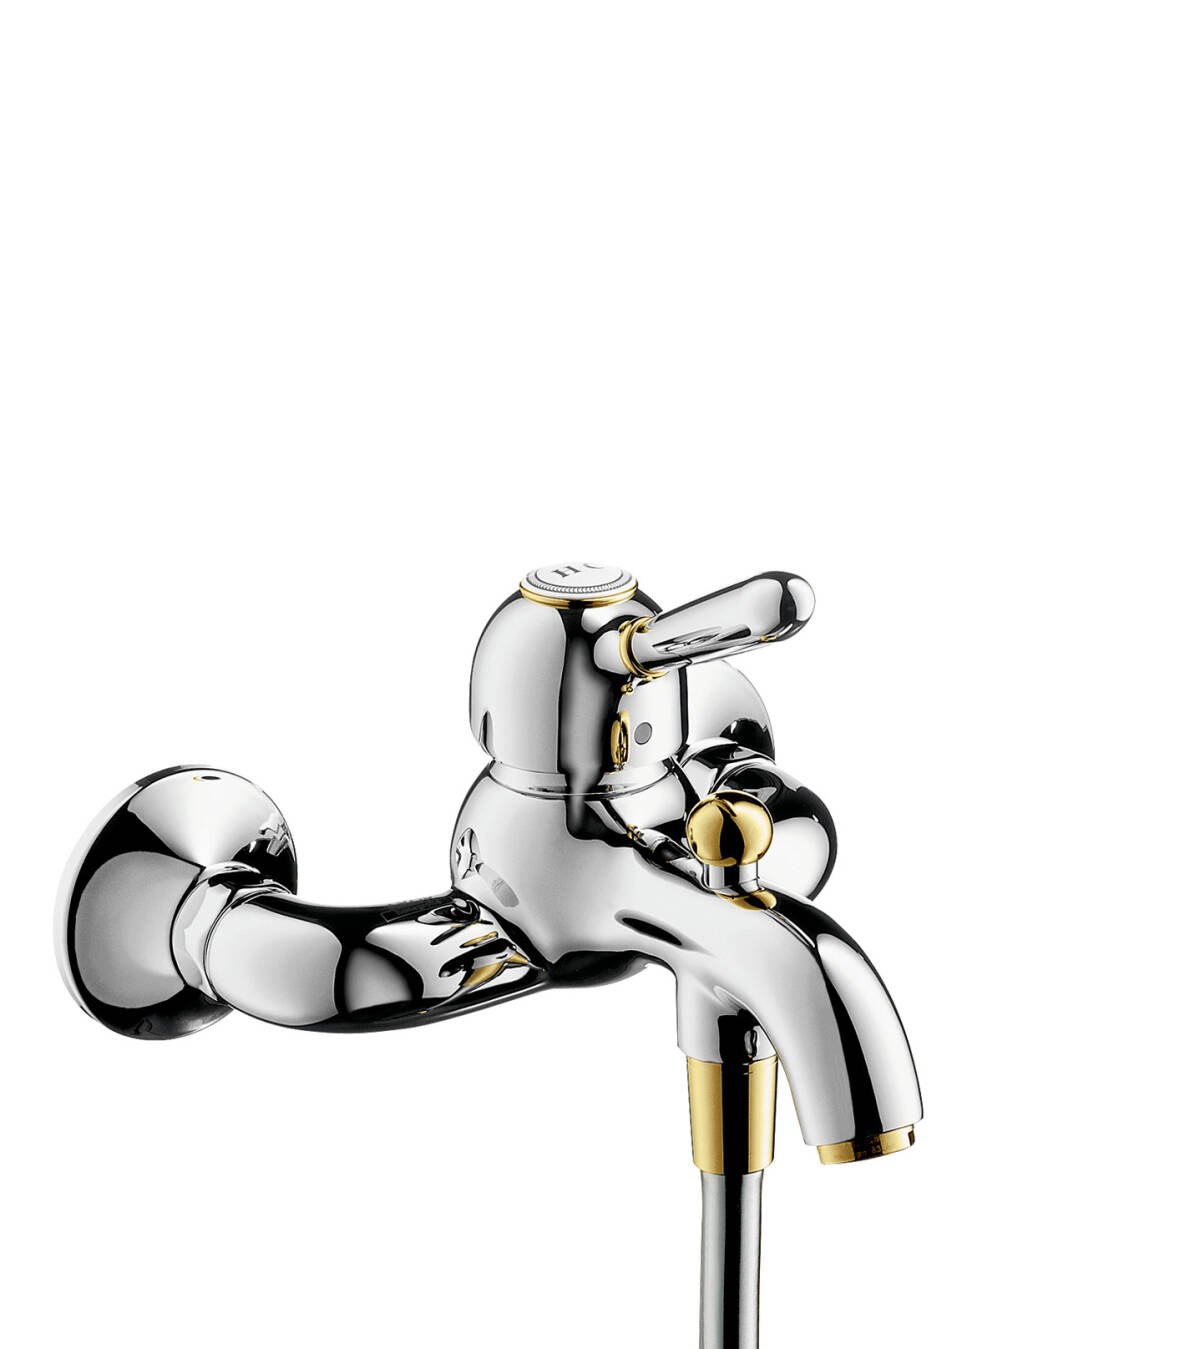 Single lever bath mixer for exposed installation, Chrome, 17410000